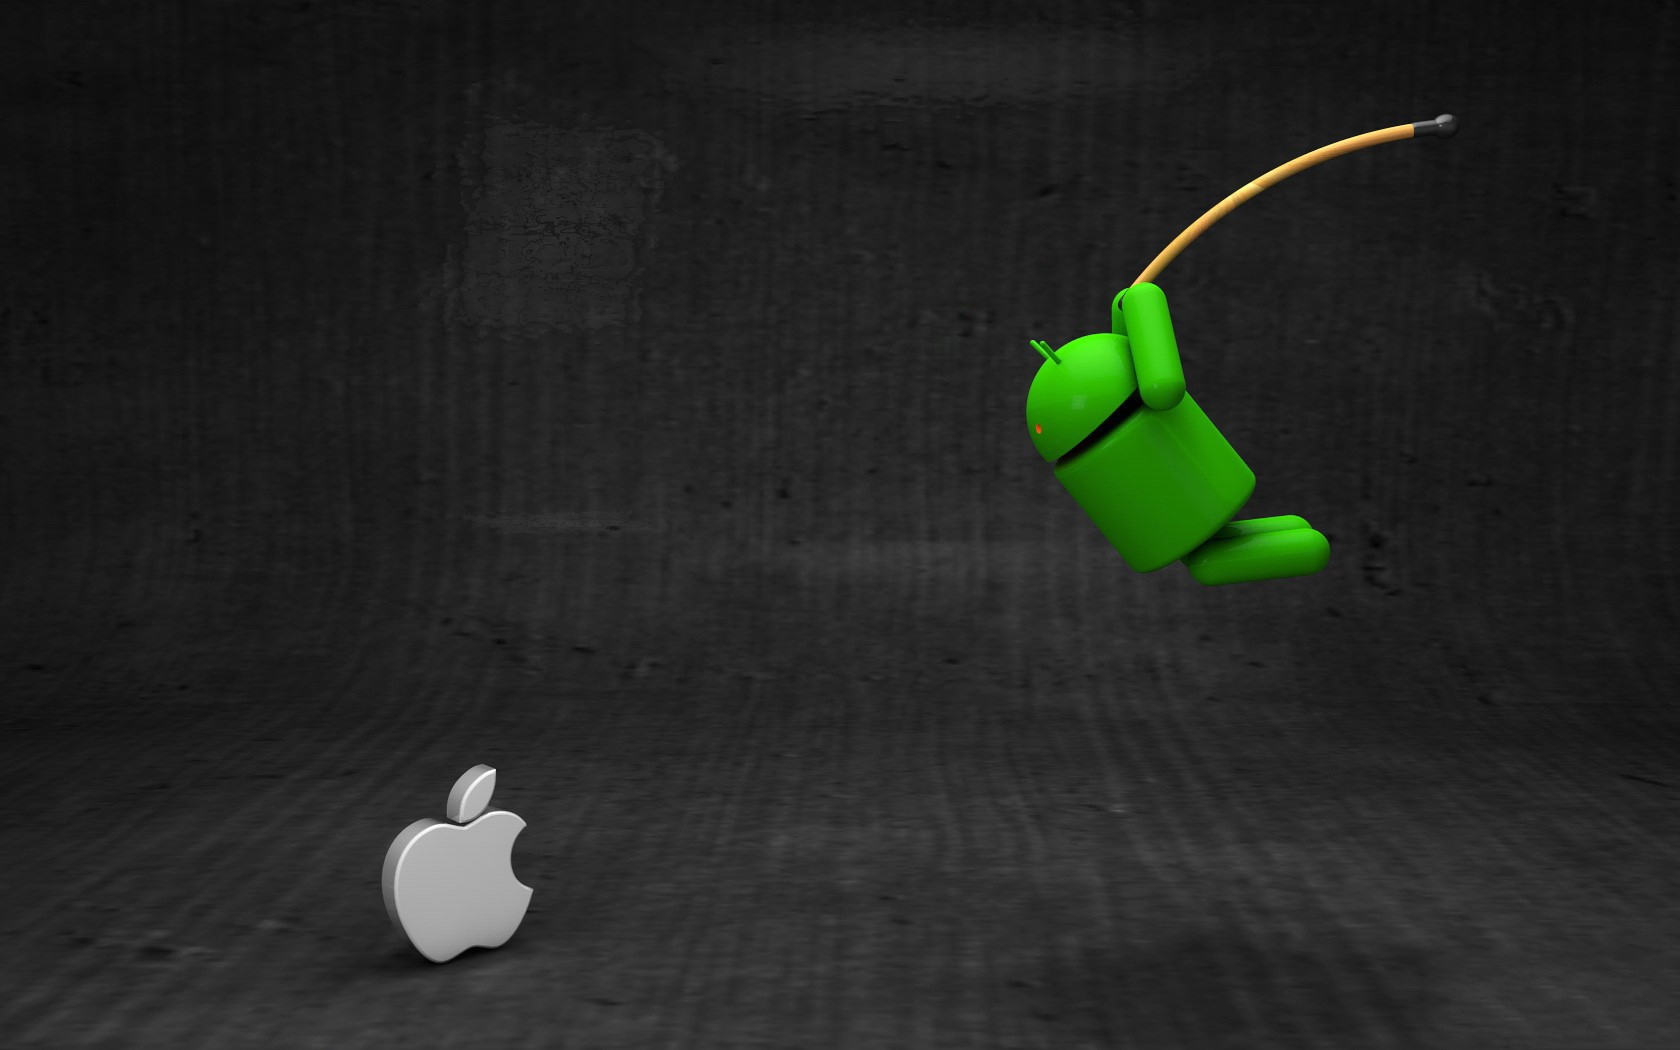 Android vs Apple wallpaper 1680x1050